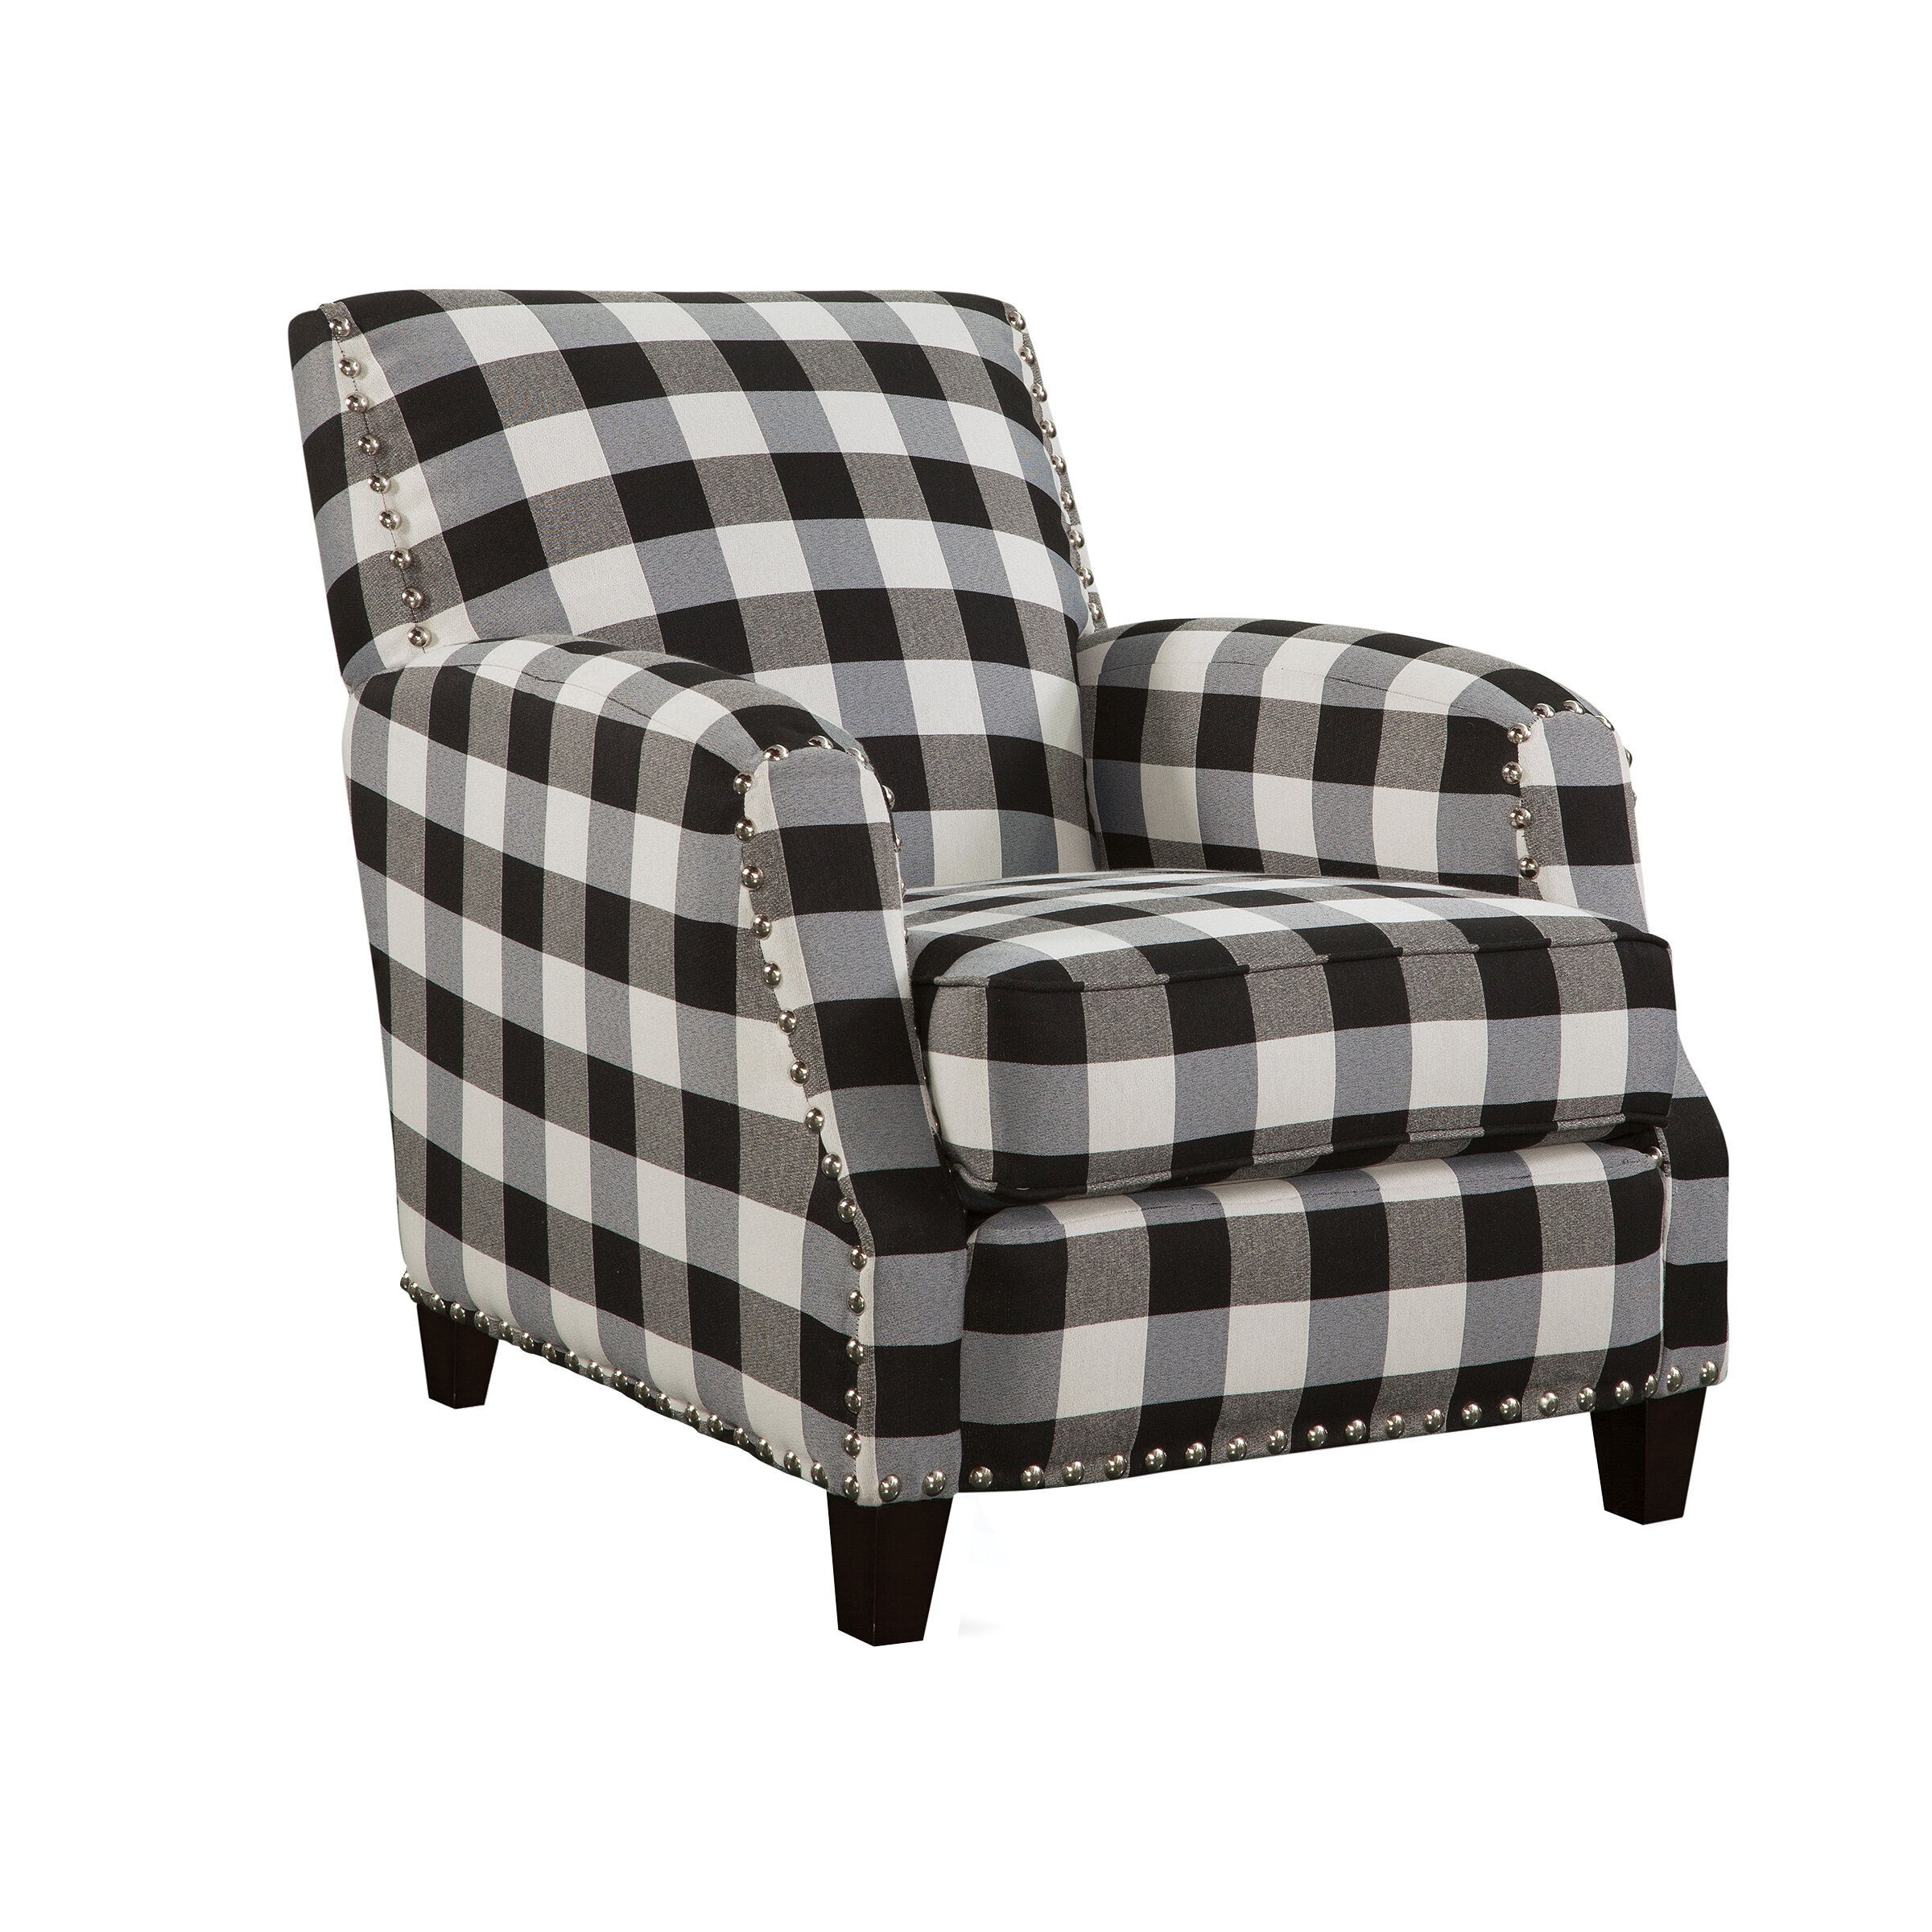 Laurel Foundry Modern Farmhouse Clarkesville Armchair Reviews Wayfair